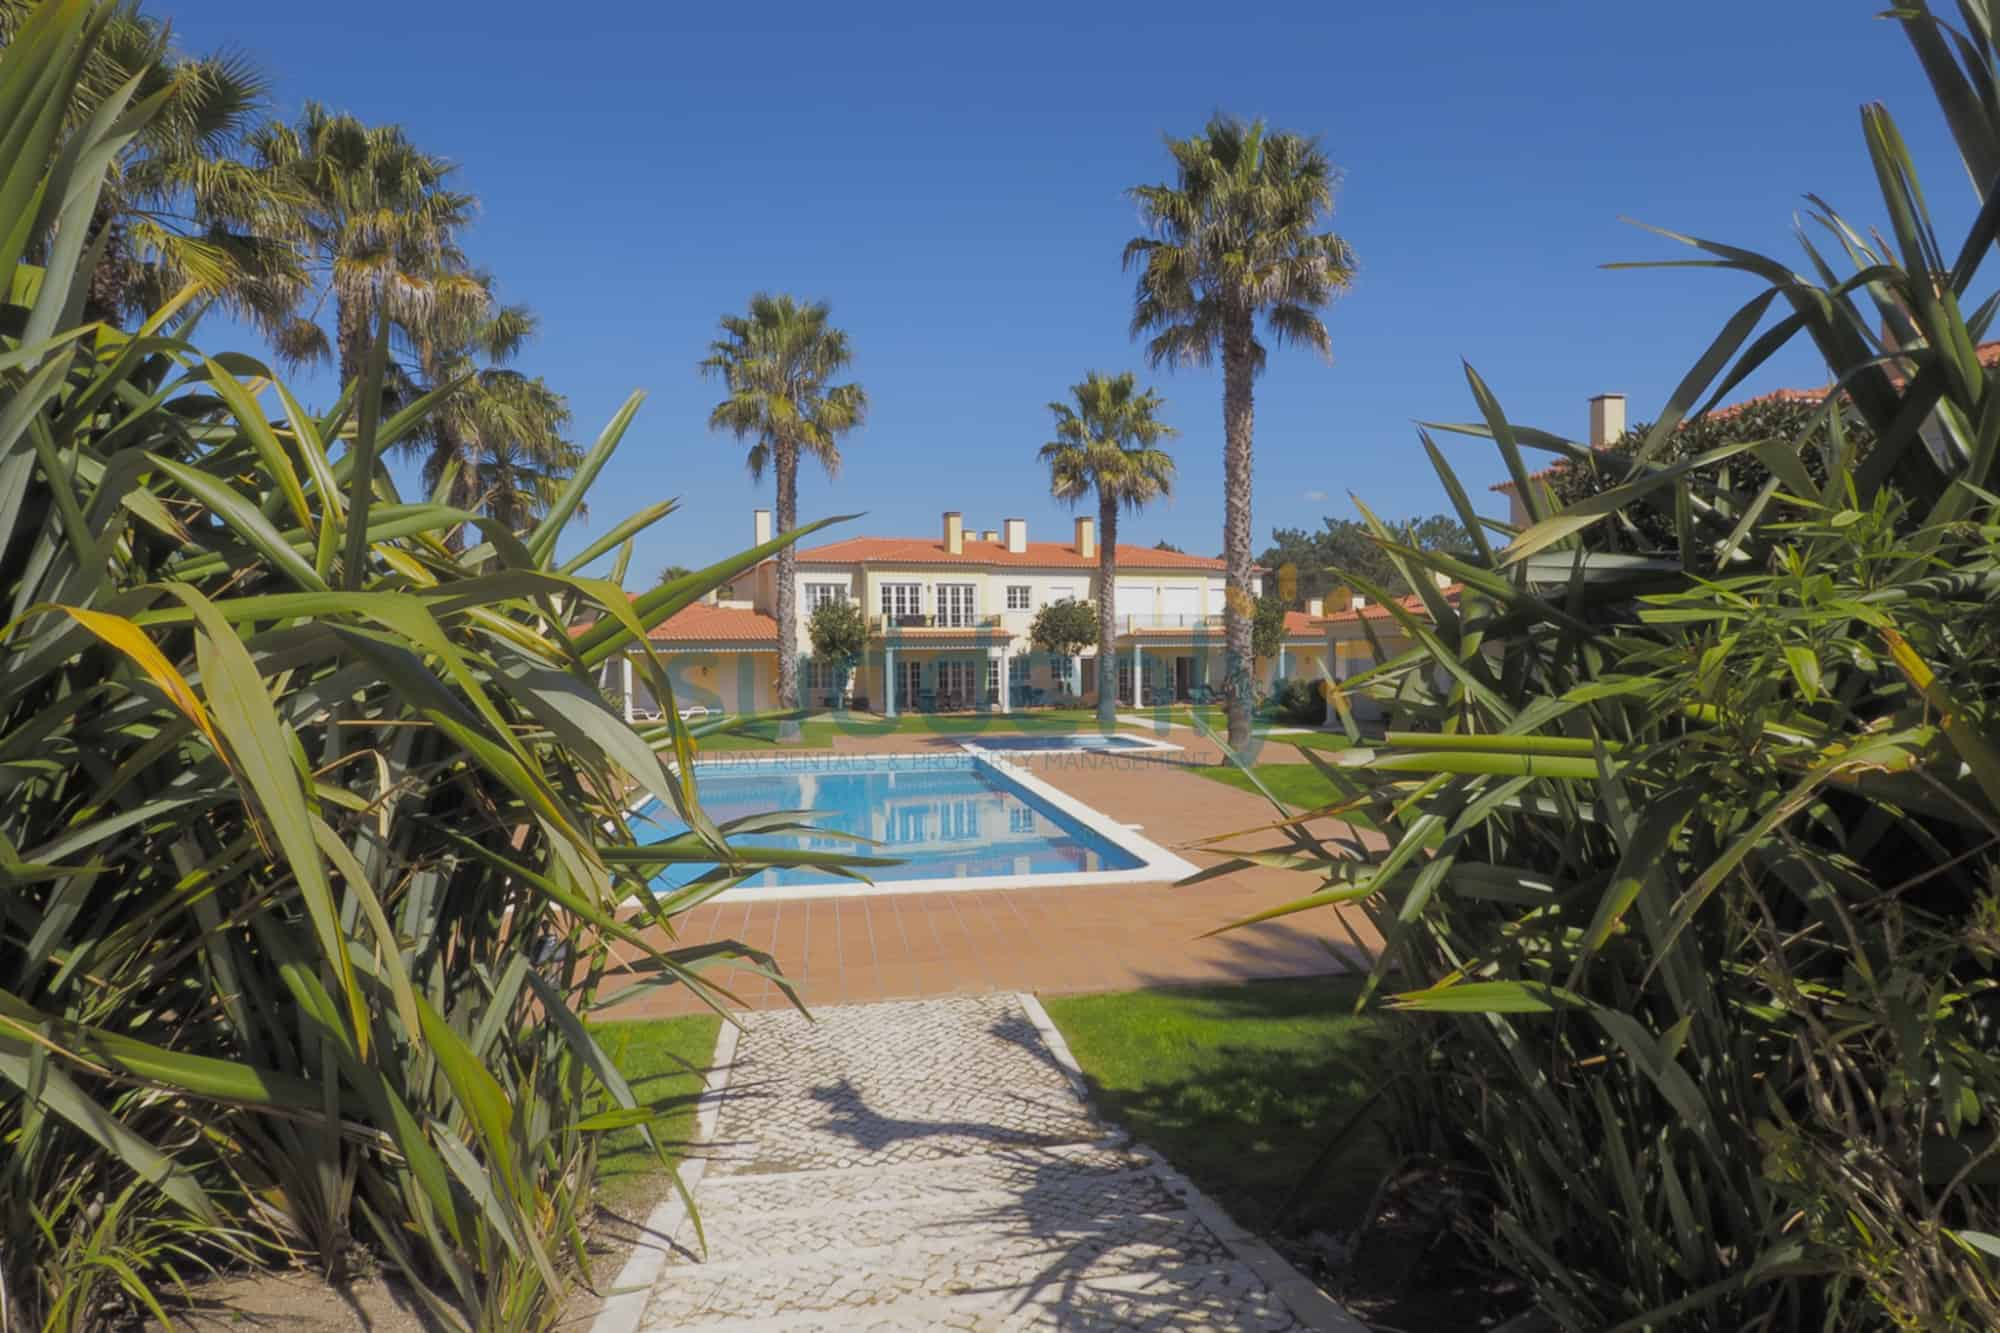 Holiday Rentals in Praia D'El Rey 5